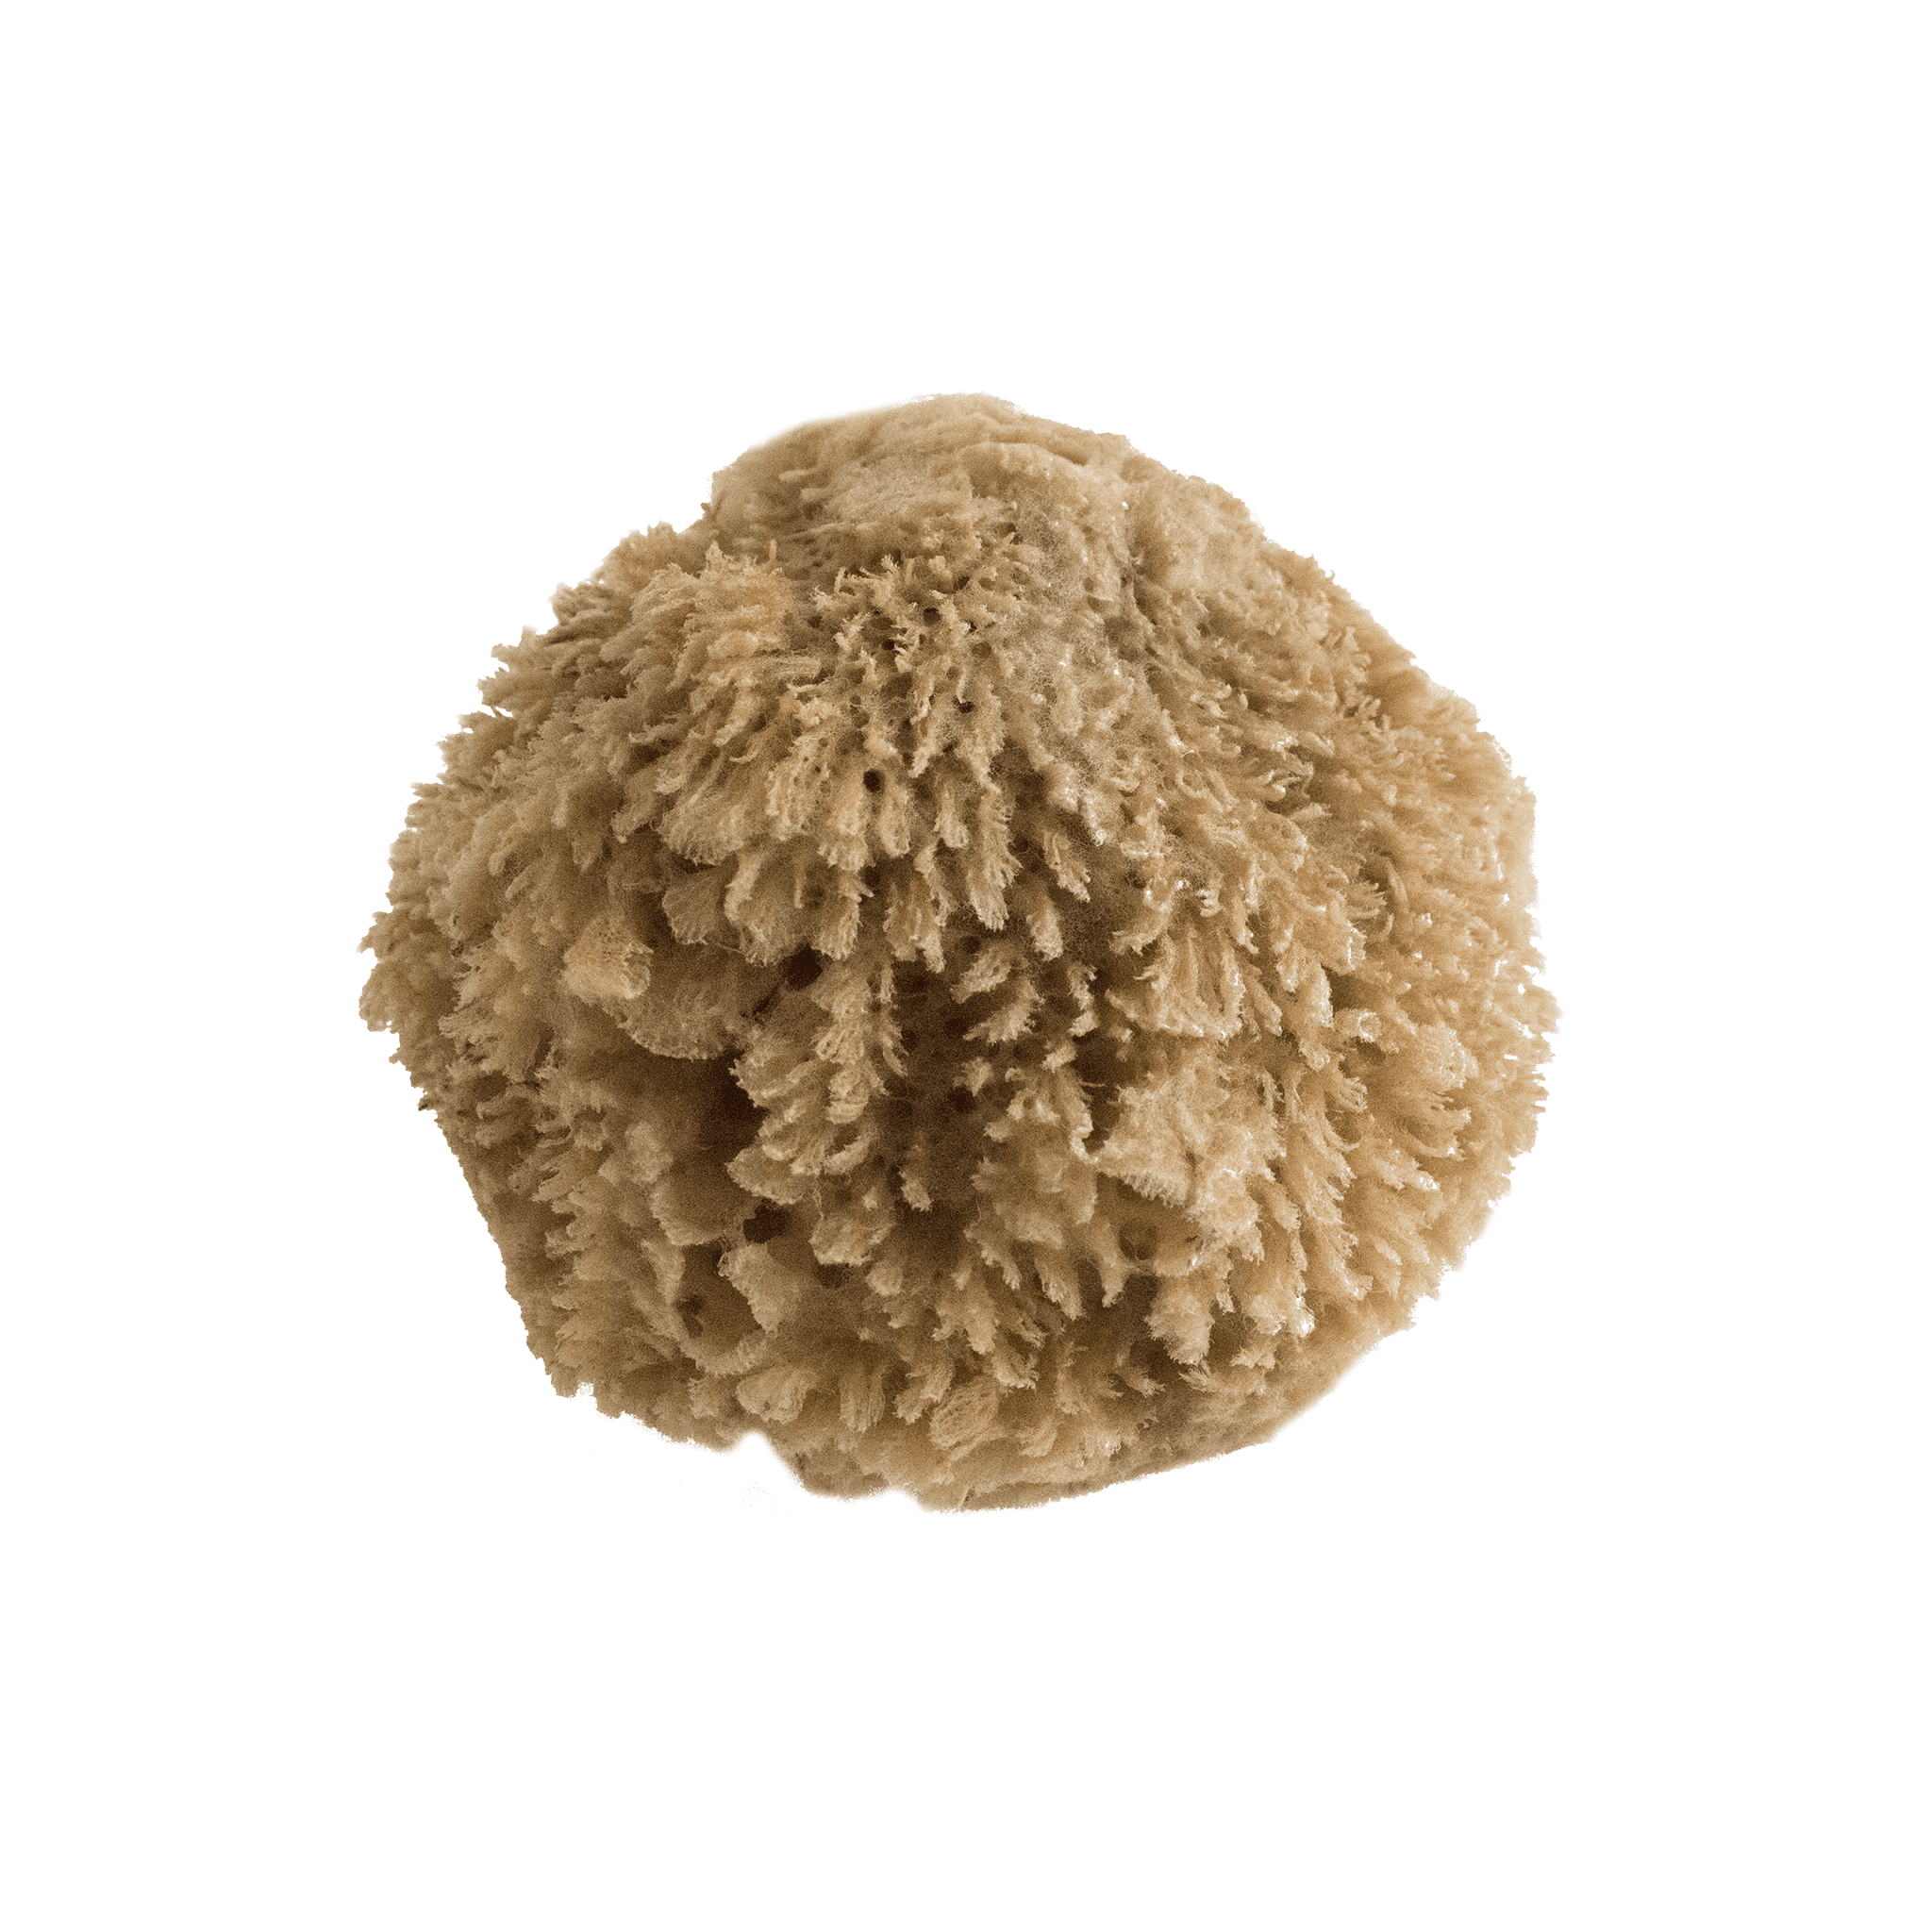 Grass Natural Sea Sponge - LIMITED EDITION - Eco Kindly